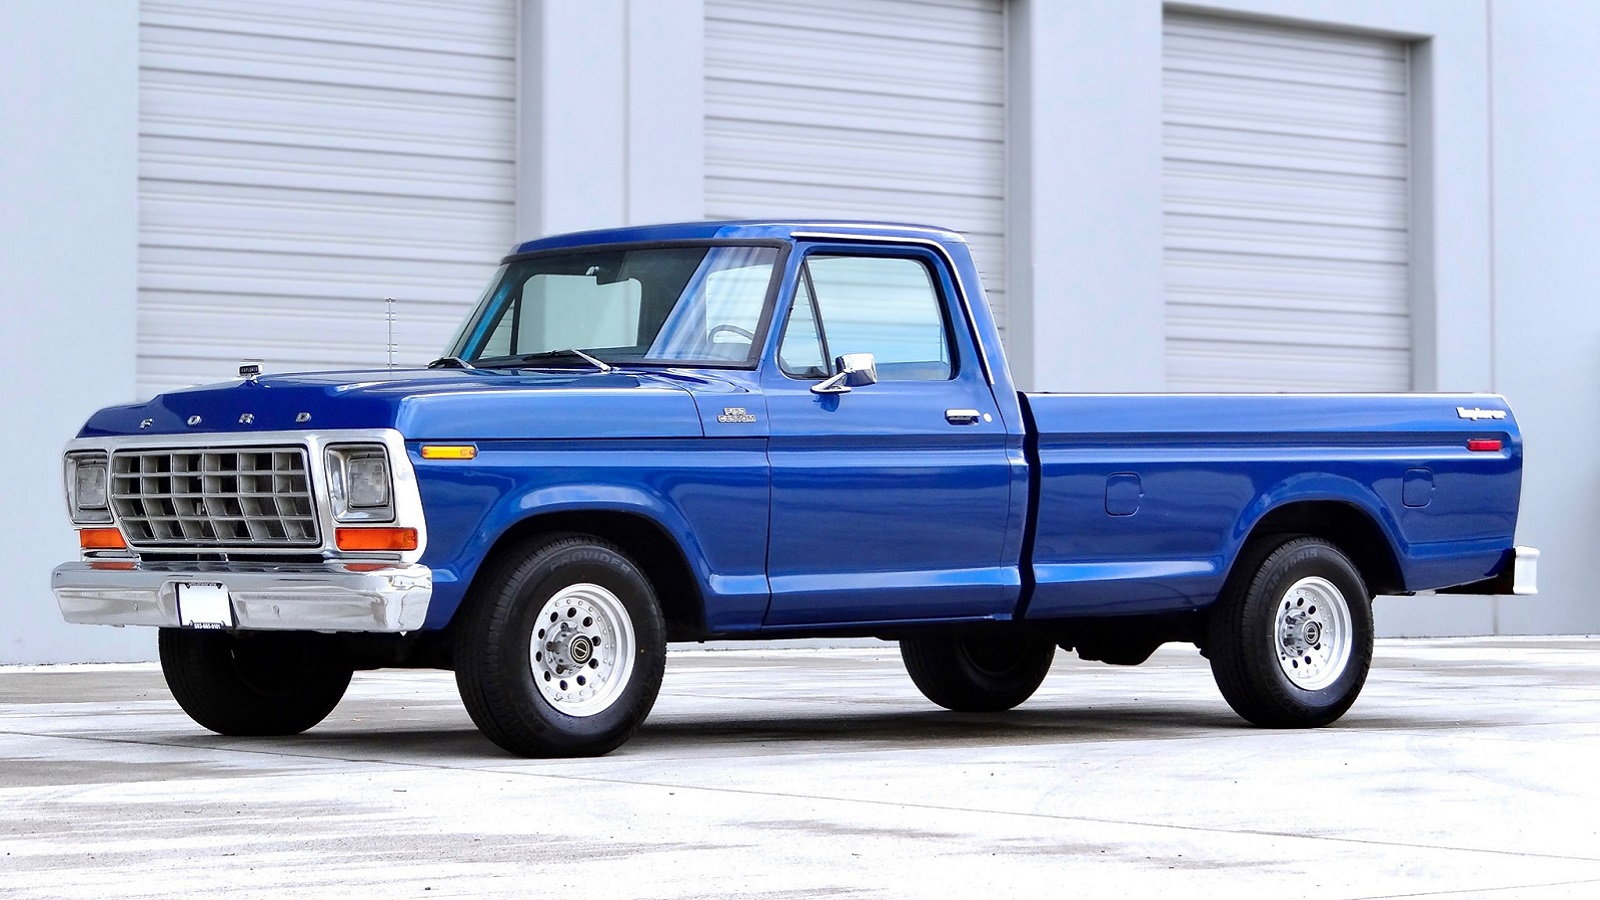 Clean 1979 Ford F-150 Has All the Right Stuff